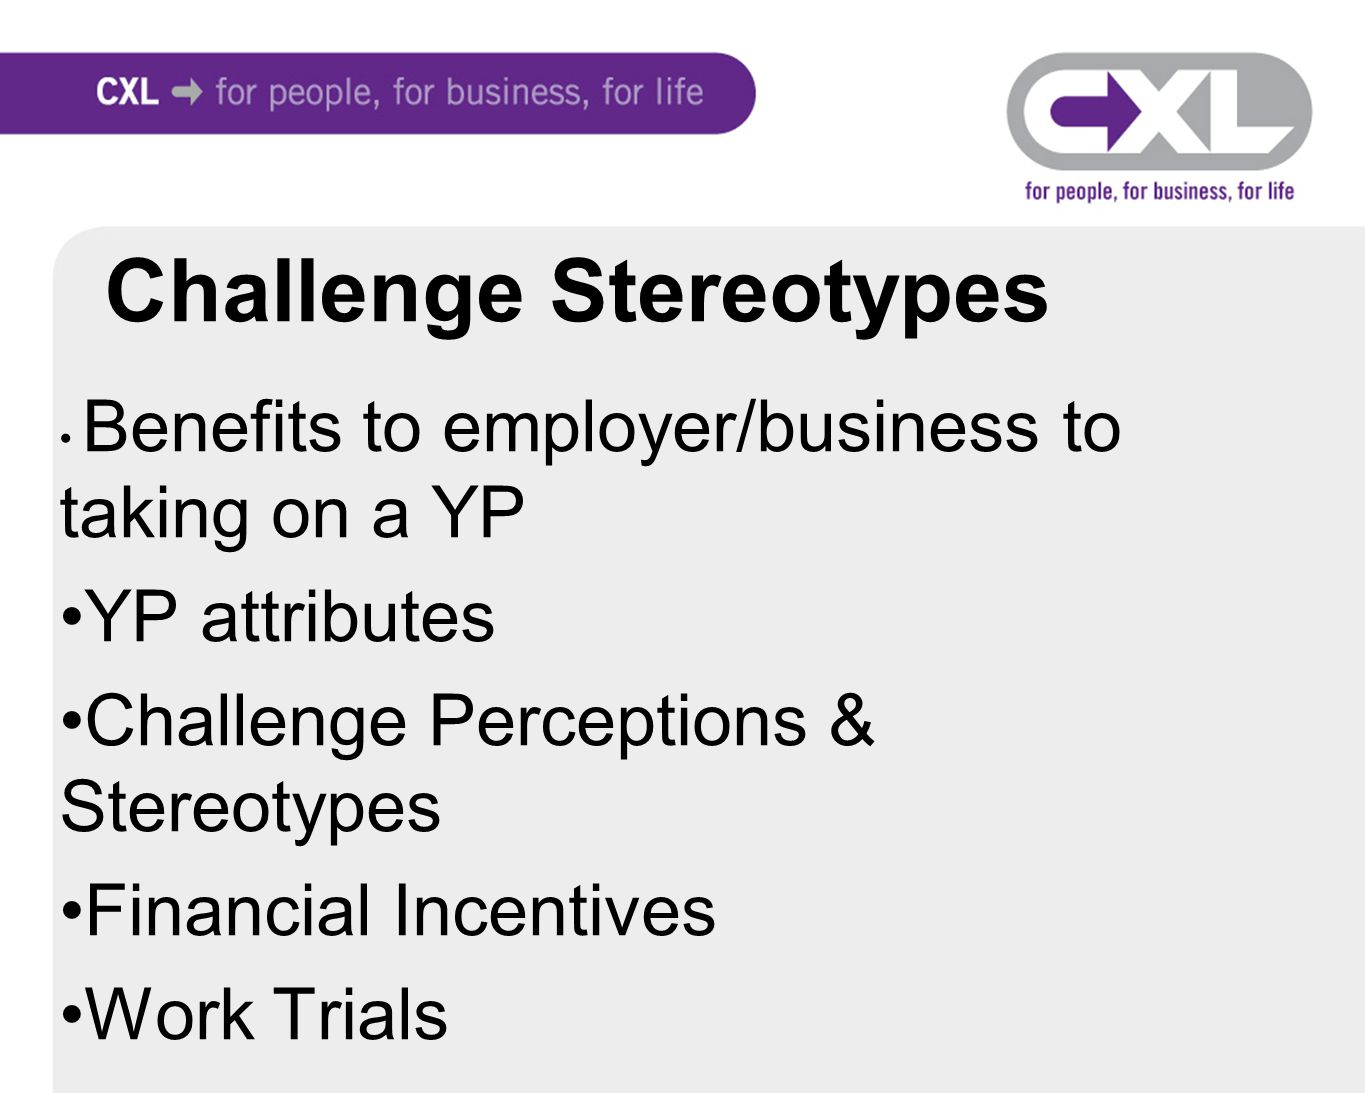 Challenge Stereotypes Benefits to employer/business to taking on a YP YP attributes Challenge Perceptions & Stereotypes Financial Incentives Work Trials